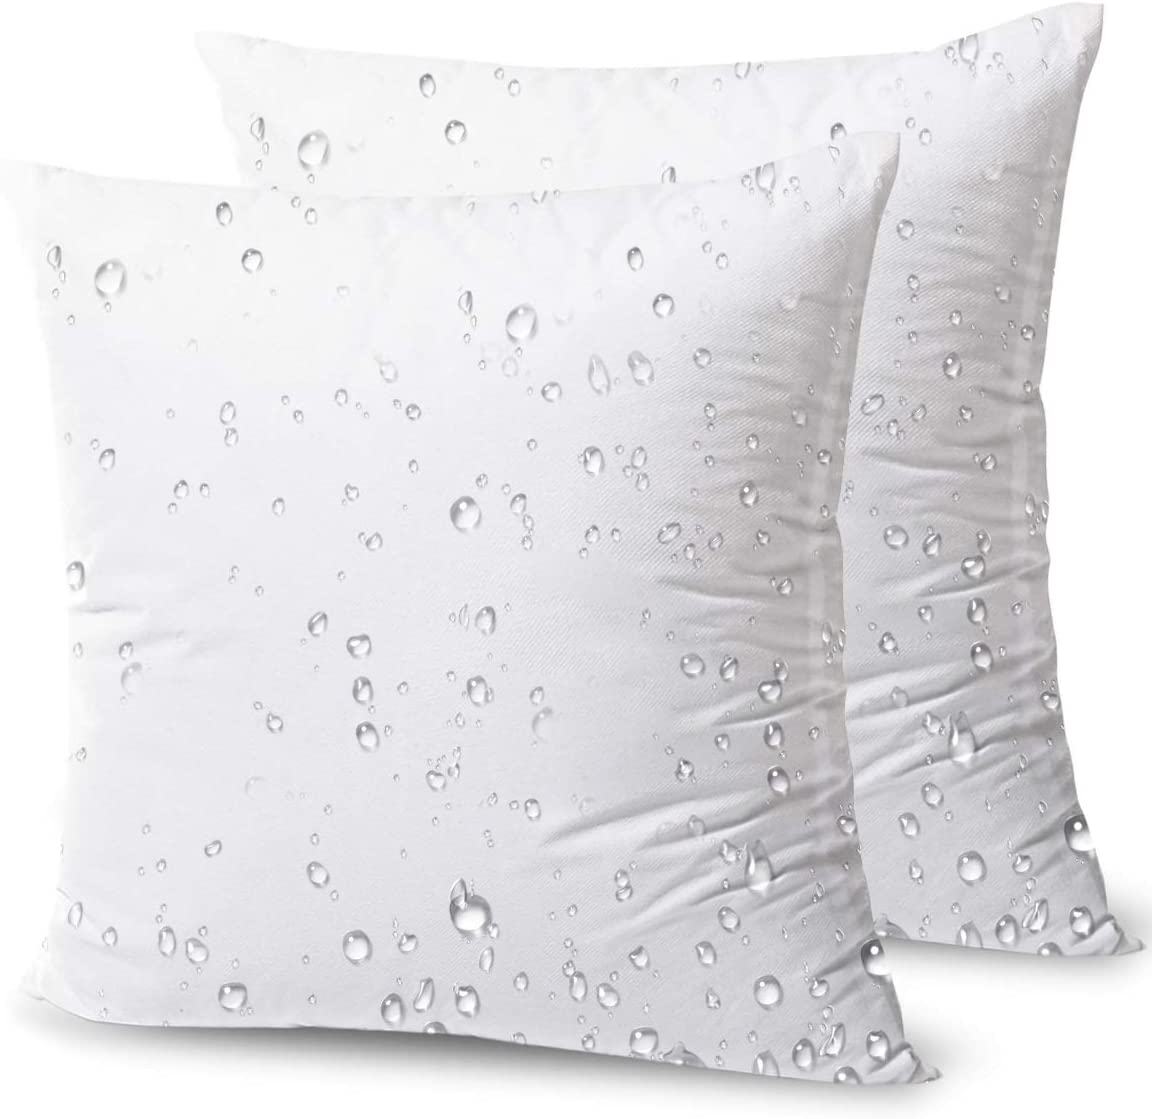 Amazon Com Phantoscope Premium Outdoor Pillow Inserts Pack Of 2 Square Form Water Resistant Decorative Throw Pillows Couch Sham Cushion Stuffer 18 X 18 Inches Kitchen Dining